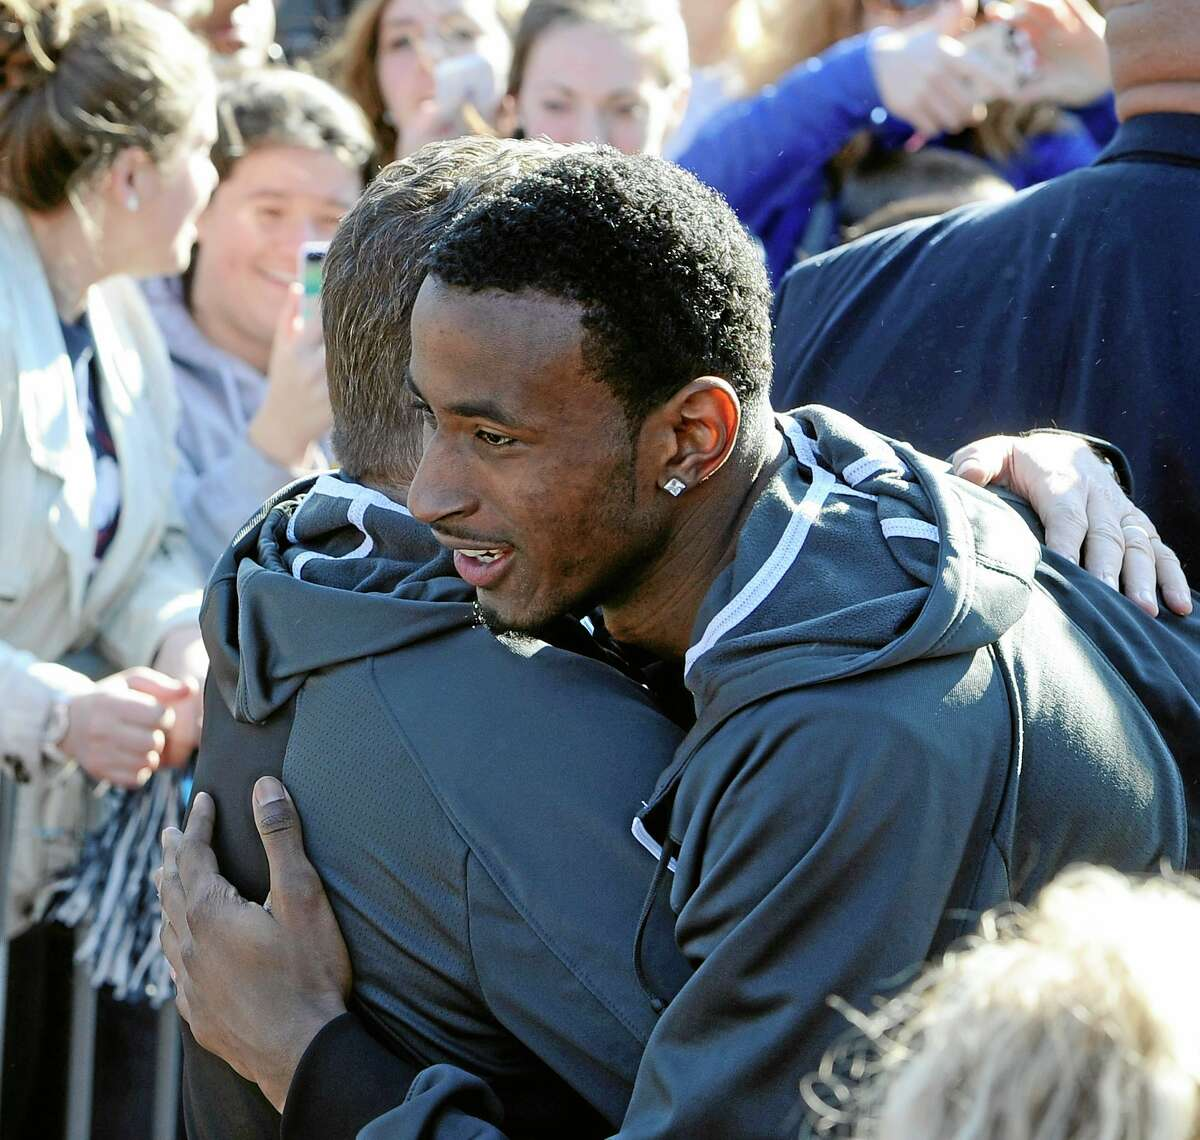 Connecticut men's basketball player DeAndre Daniels, right, hugs Connecticut women's head coach Geno Auriemma after Auriemma arrived on campus with his team for a rally celebrating their NCAA title on Wednesday, April 9, 2014, in Storrs, Conn. (AP Photo/Jessica Hill)